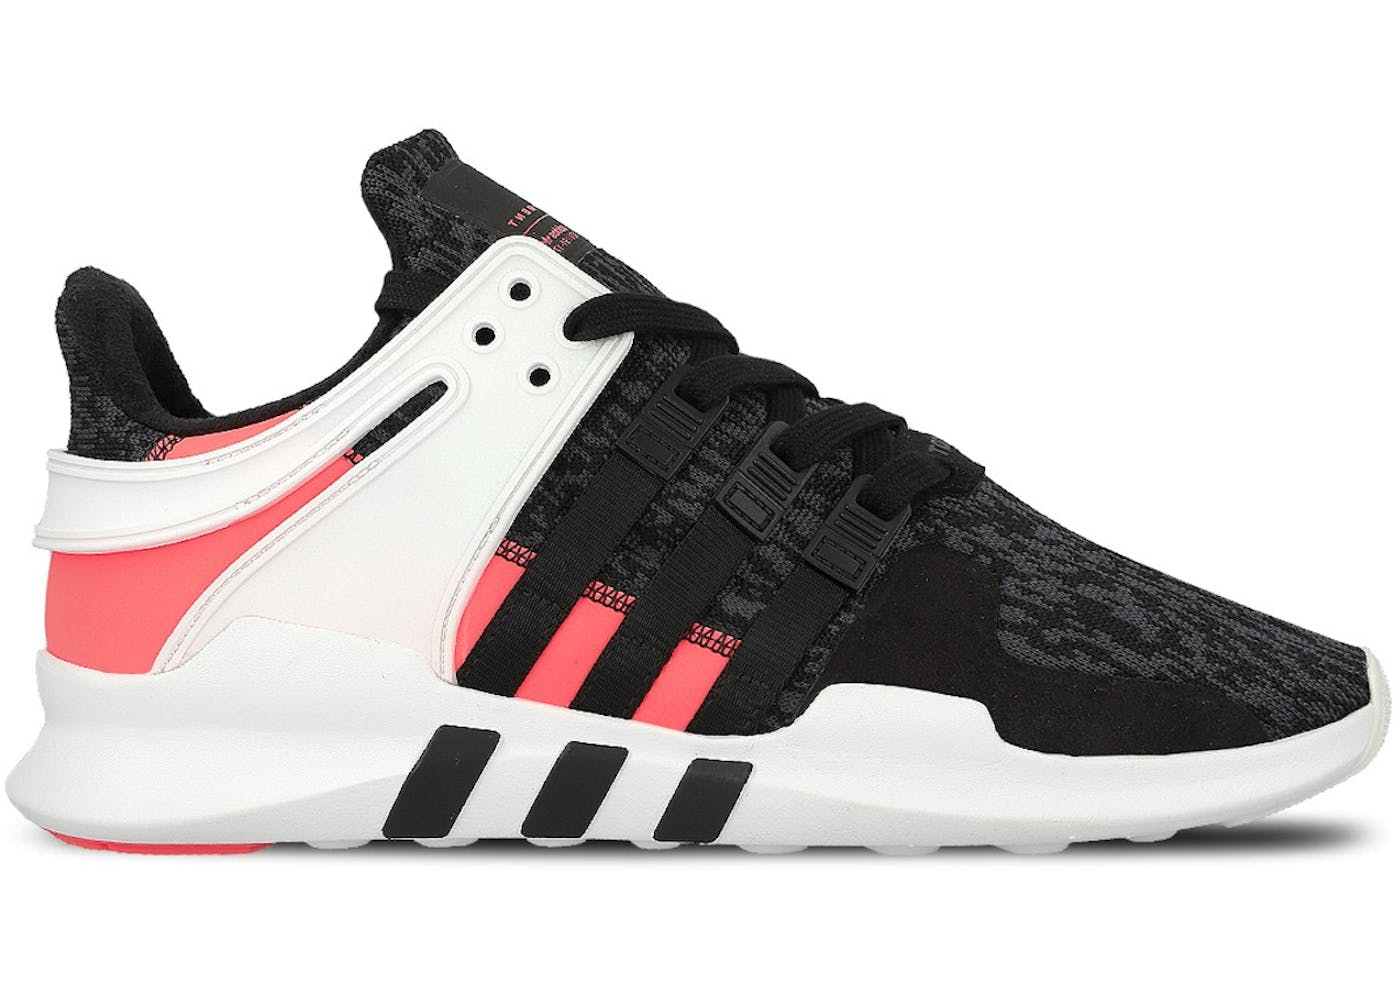 Adidas Eqt Support Adv (Black / White / Turbo Red) Comvos Express